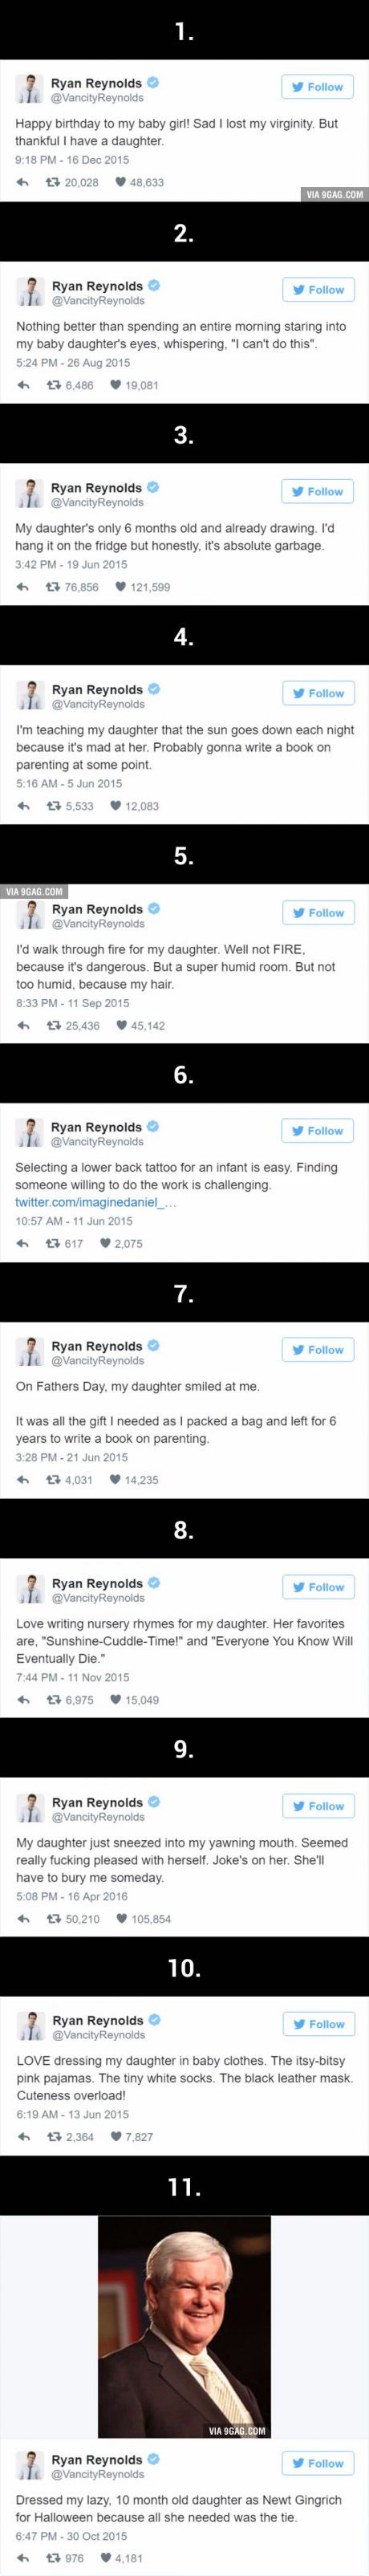 Ryan Reynolds' Hilariously Honest Tweets About His Daughter Are Even Better Than Deadpool #dadoftheyear